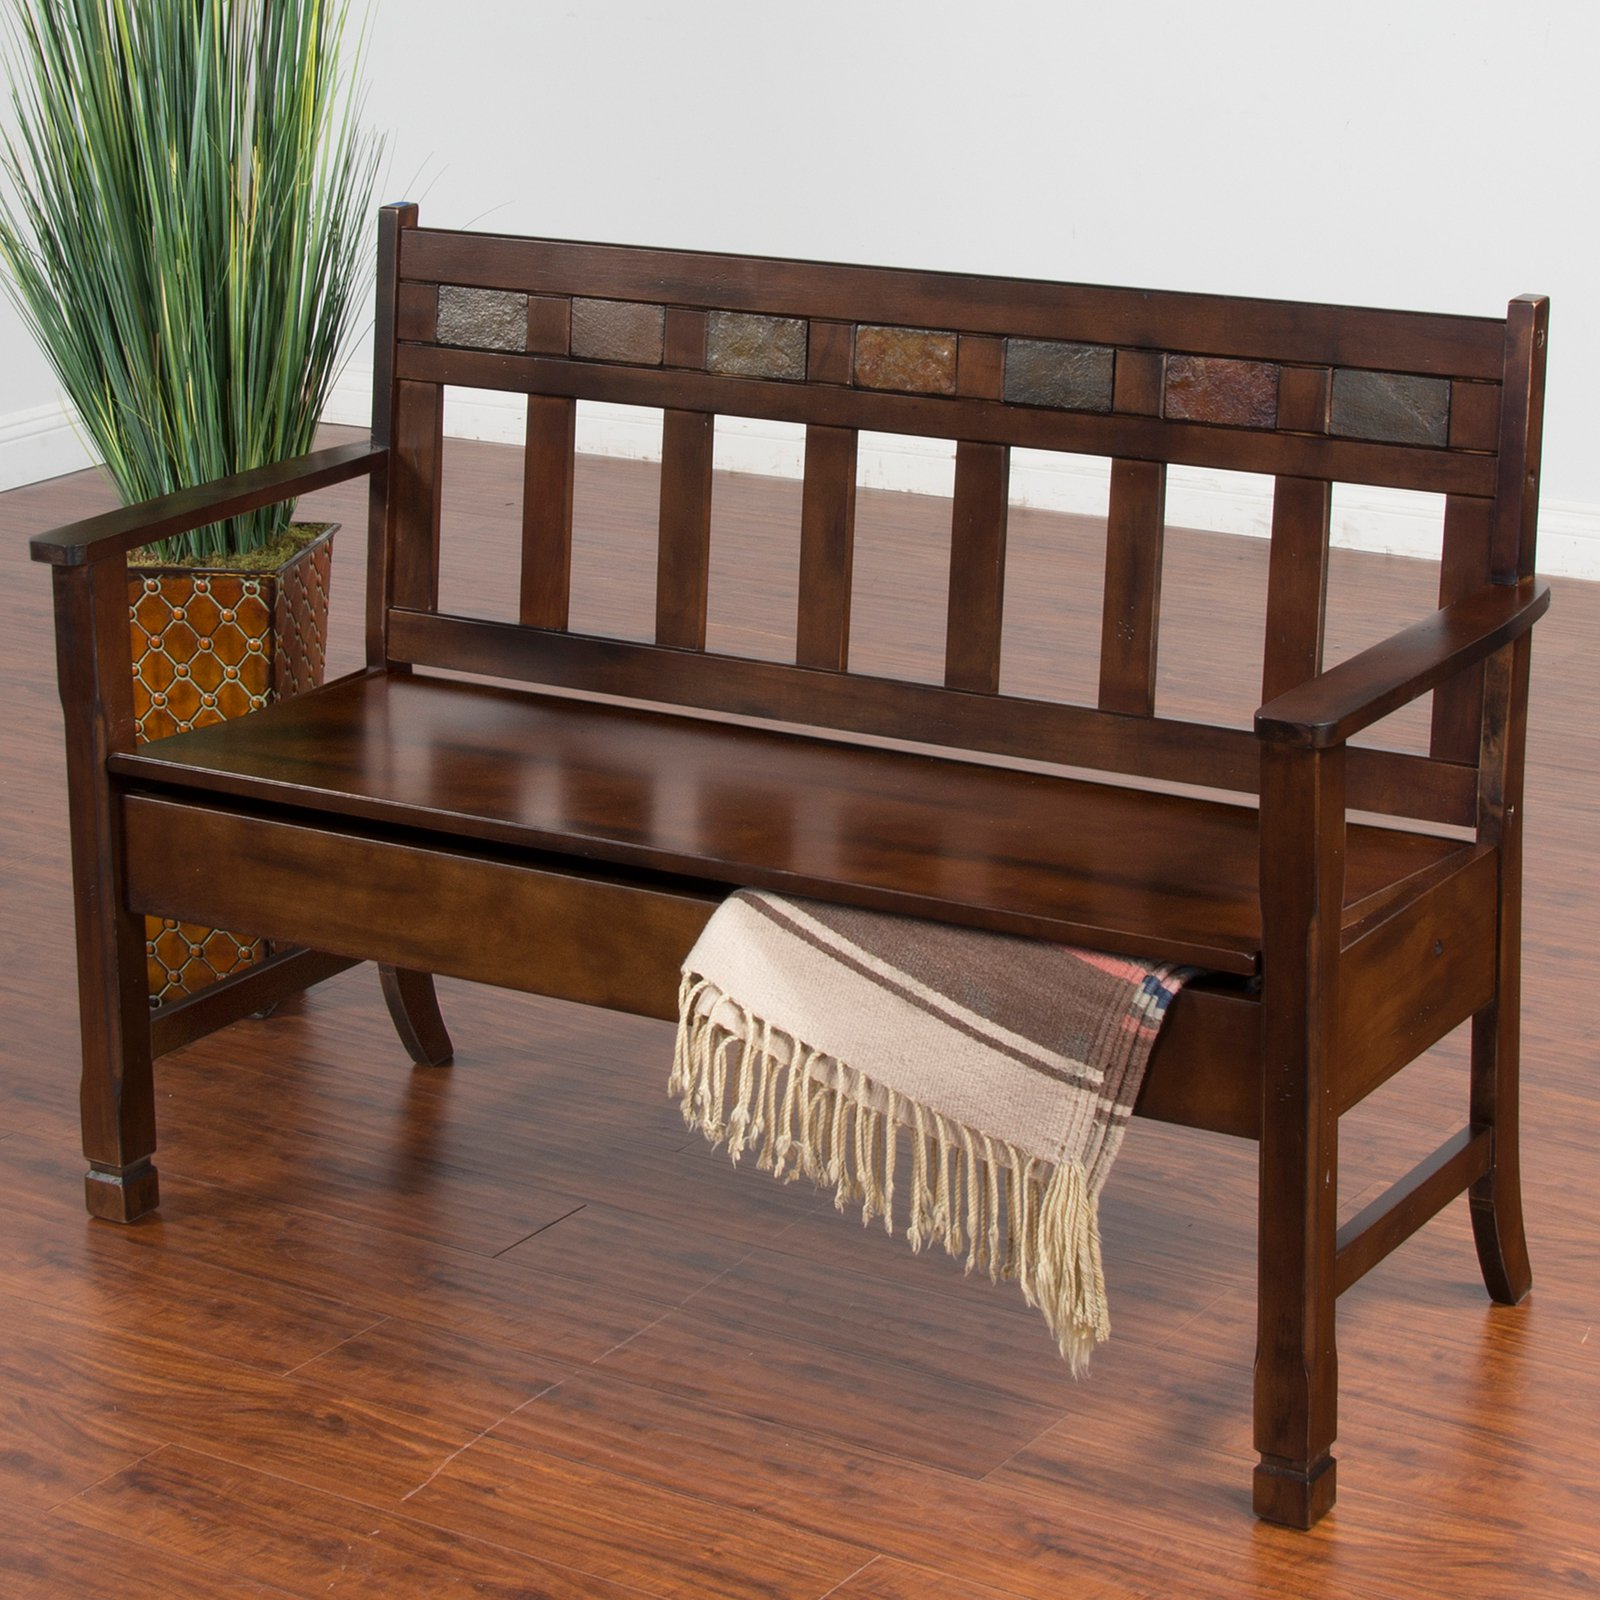 Sunny Designs Santa Fe Bench with Storage